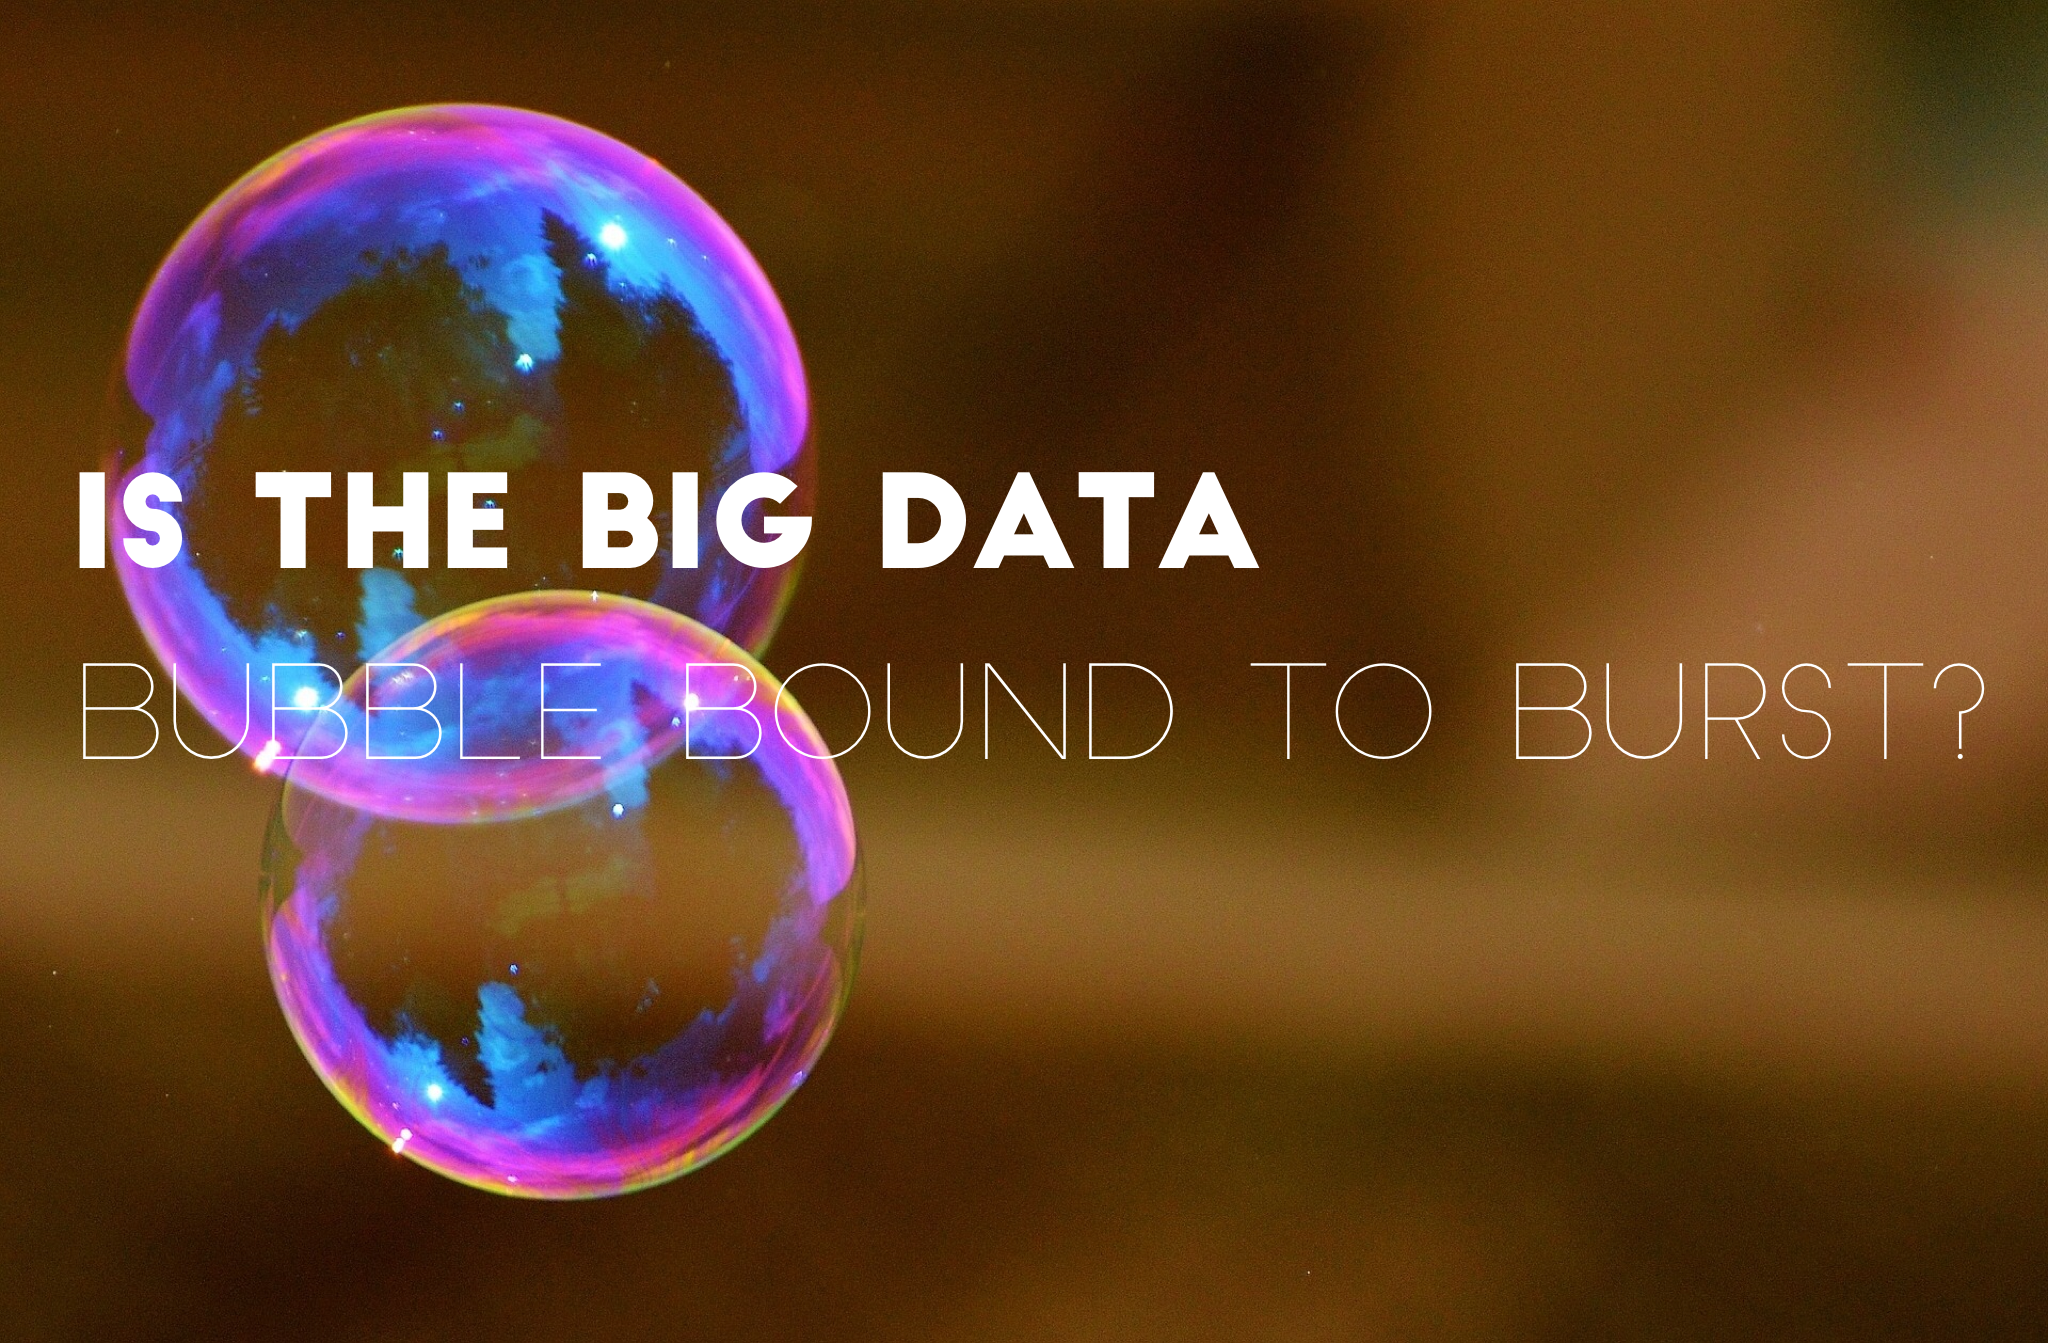 Is the big data bubble bound to burst?